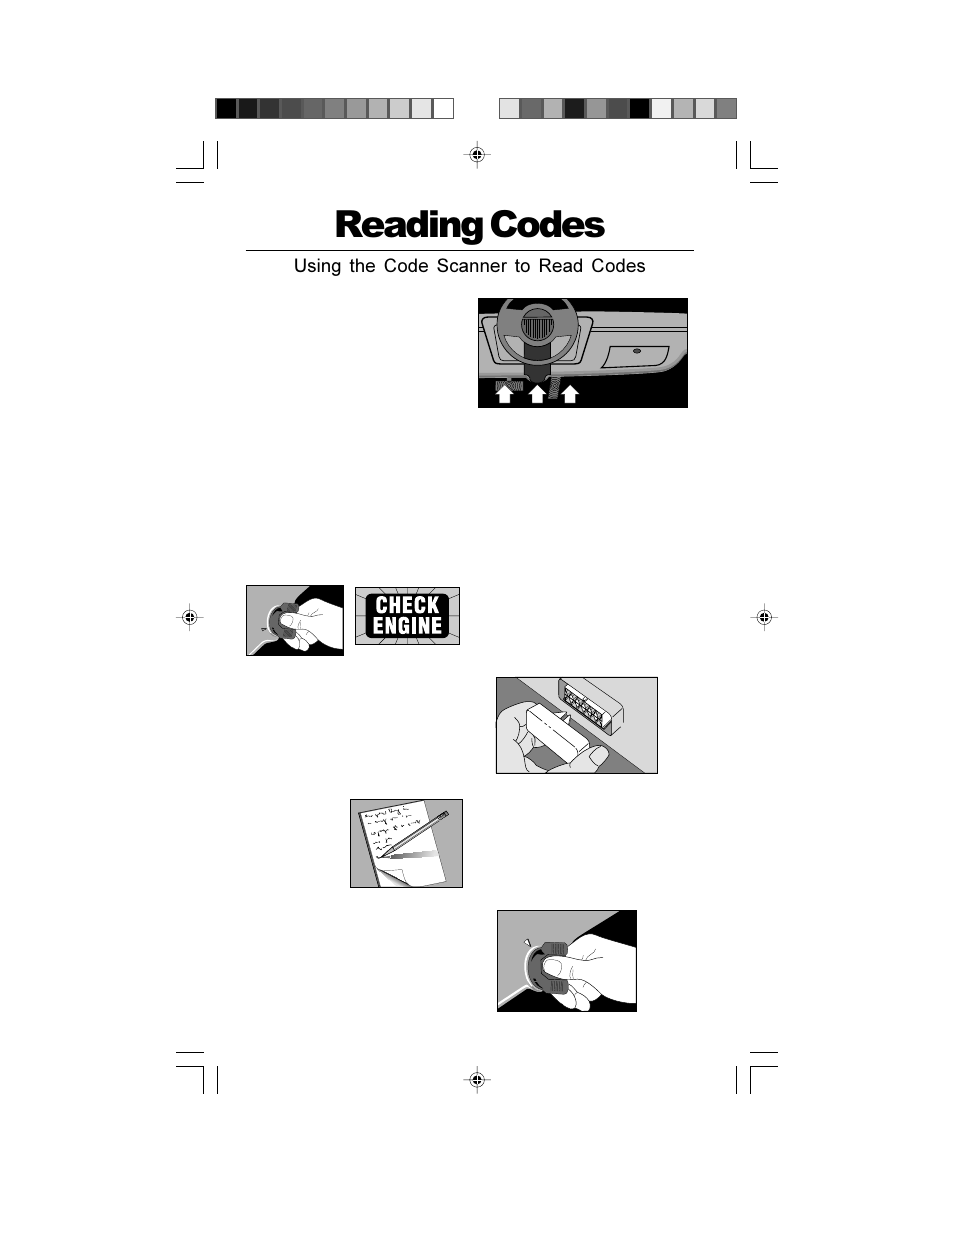 Reading codes, Of f, Using the code scanner to read codes